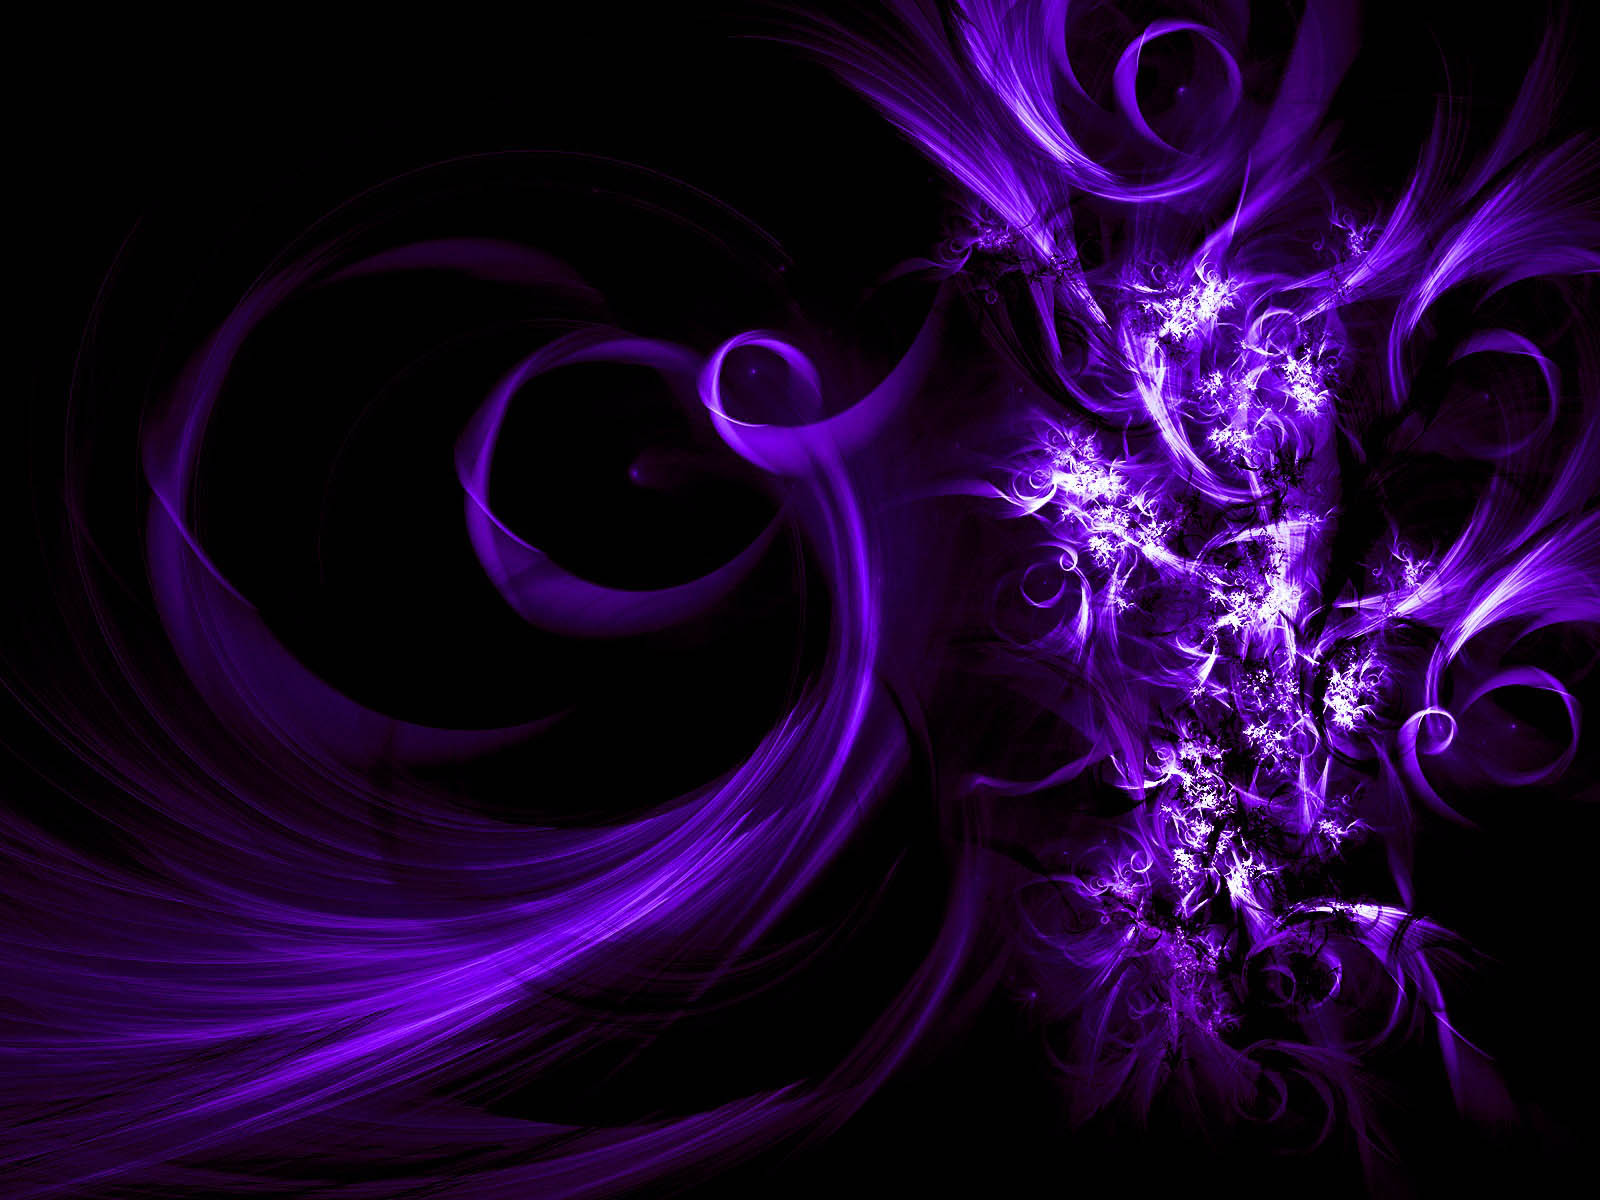 Purple Abstract Wallpapers Images Paos Pictures and Backgrounds 1600x1200